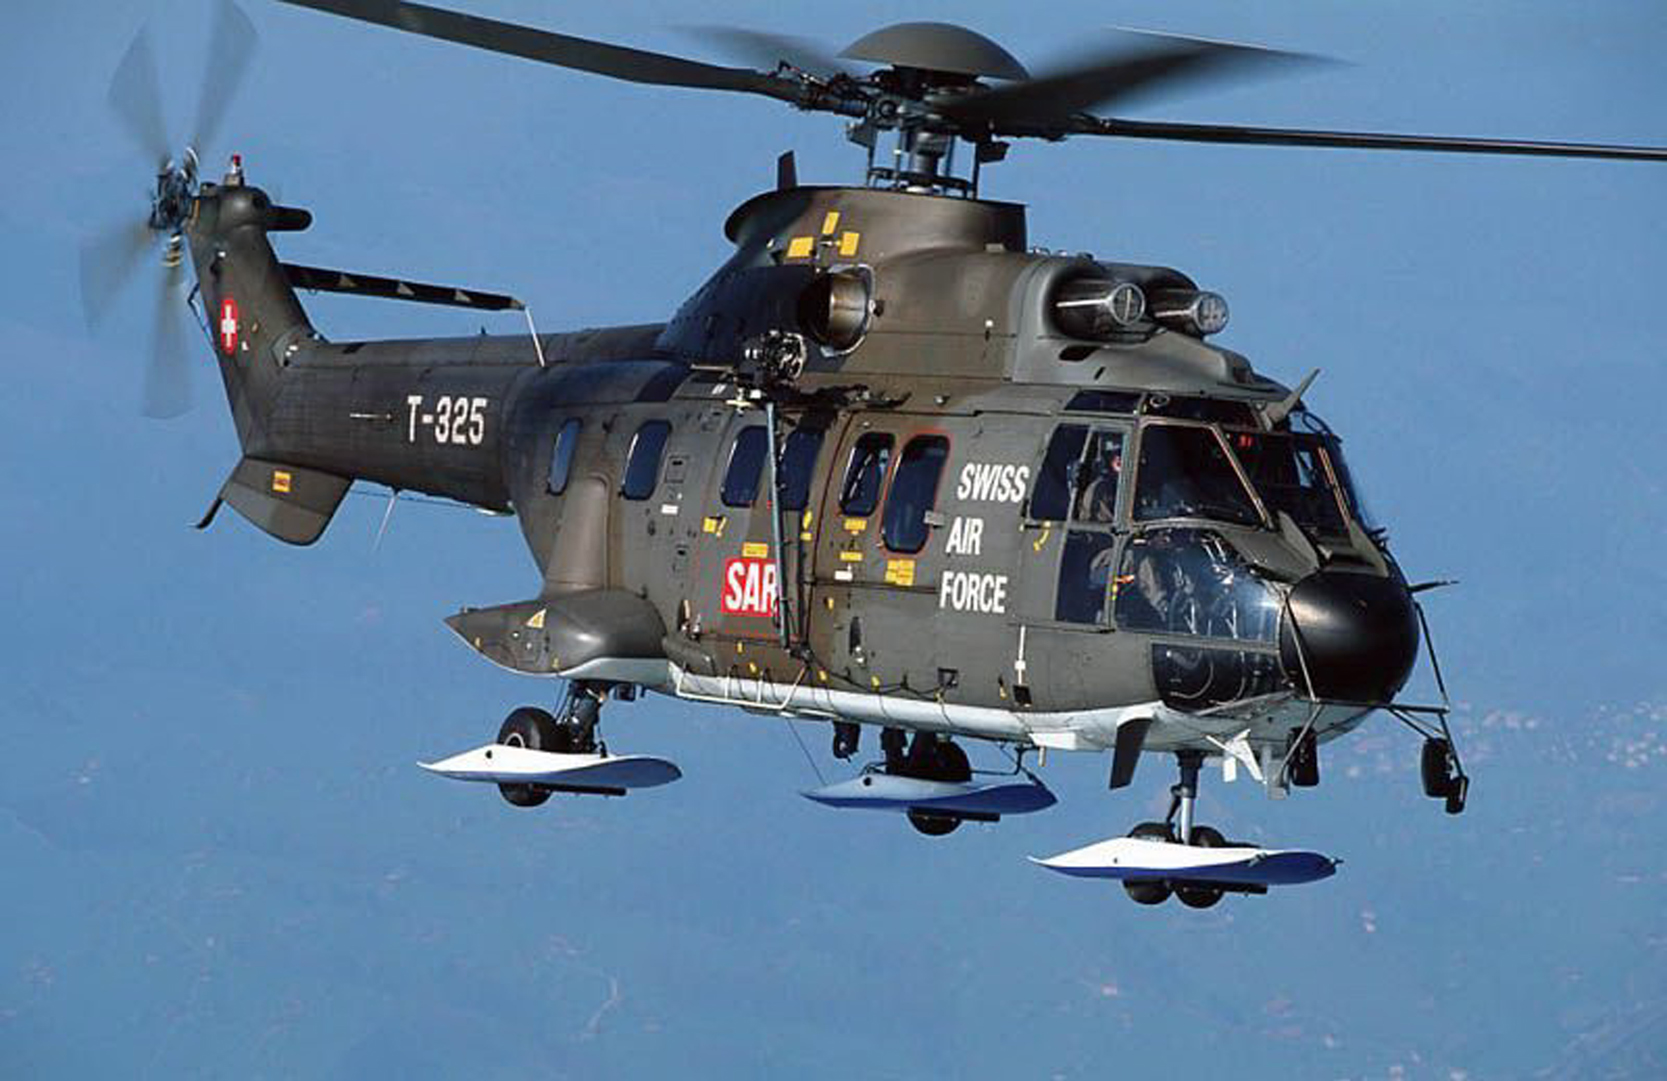 Swiss Air Force - Super Puma Helicopter